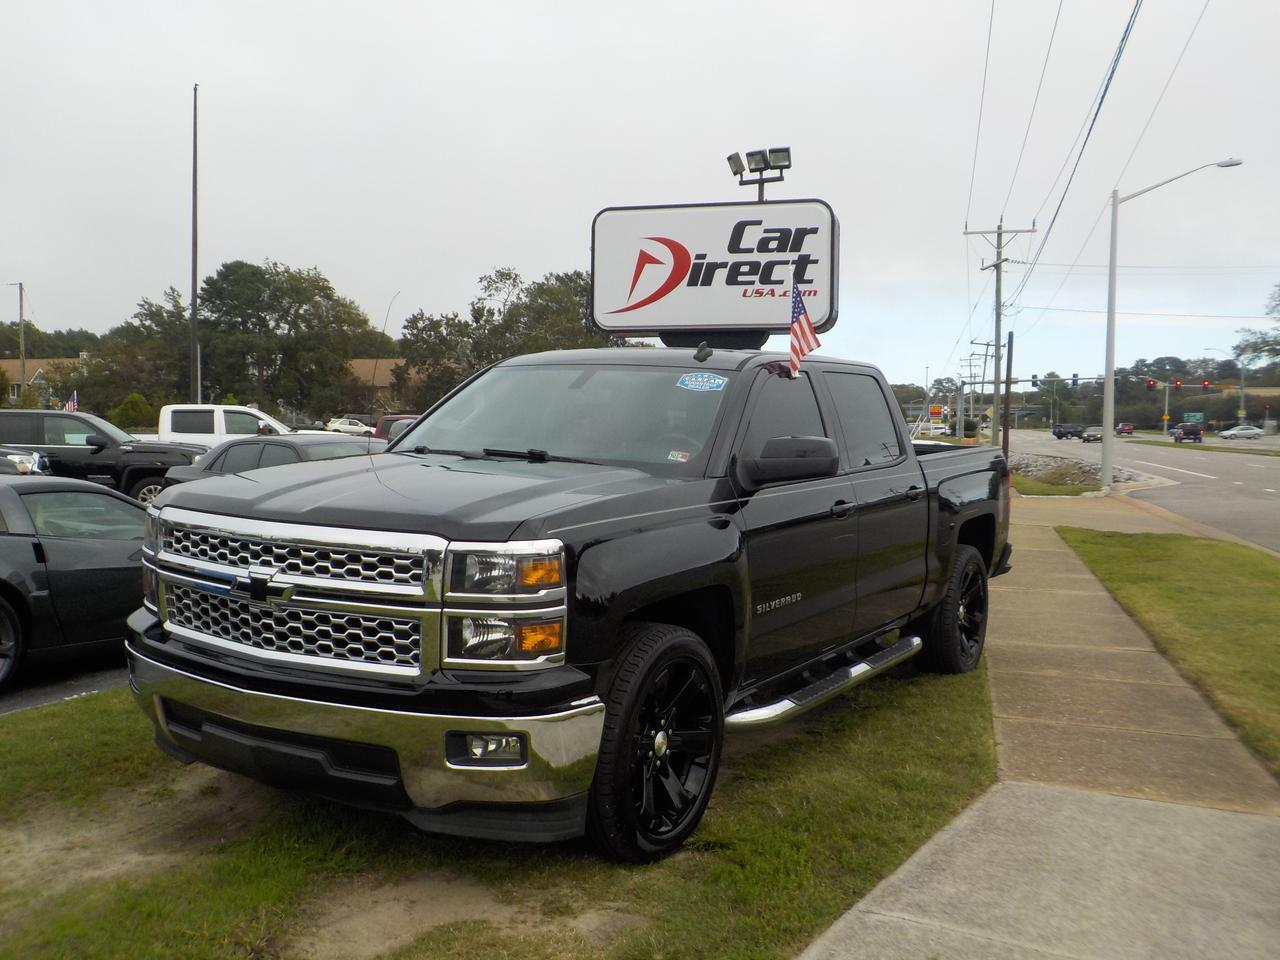 2014 CHEVROLET SILVERADO 1500 CREW CAB LT, RUNNING BOARDS, TOW PACKAGE, BACKUP CAMERA, REMOTE START, LOW MILES!